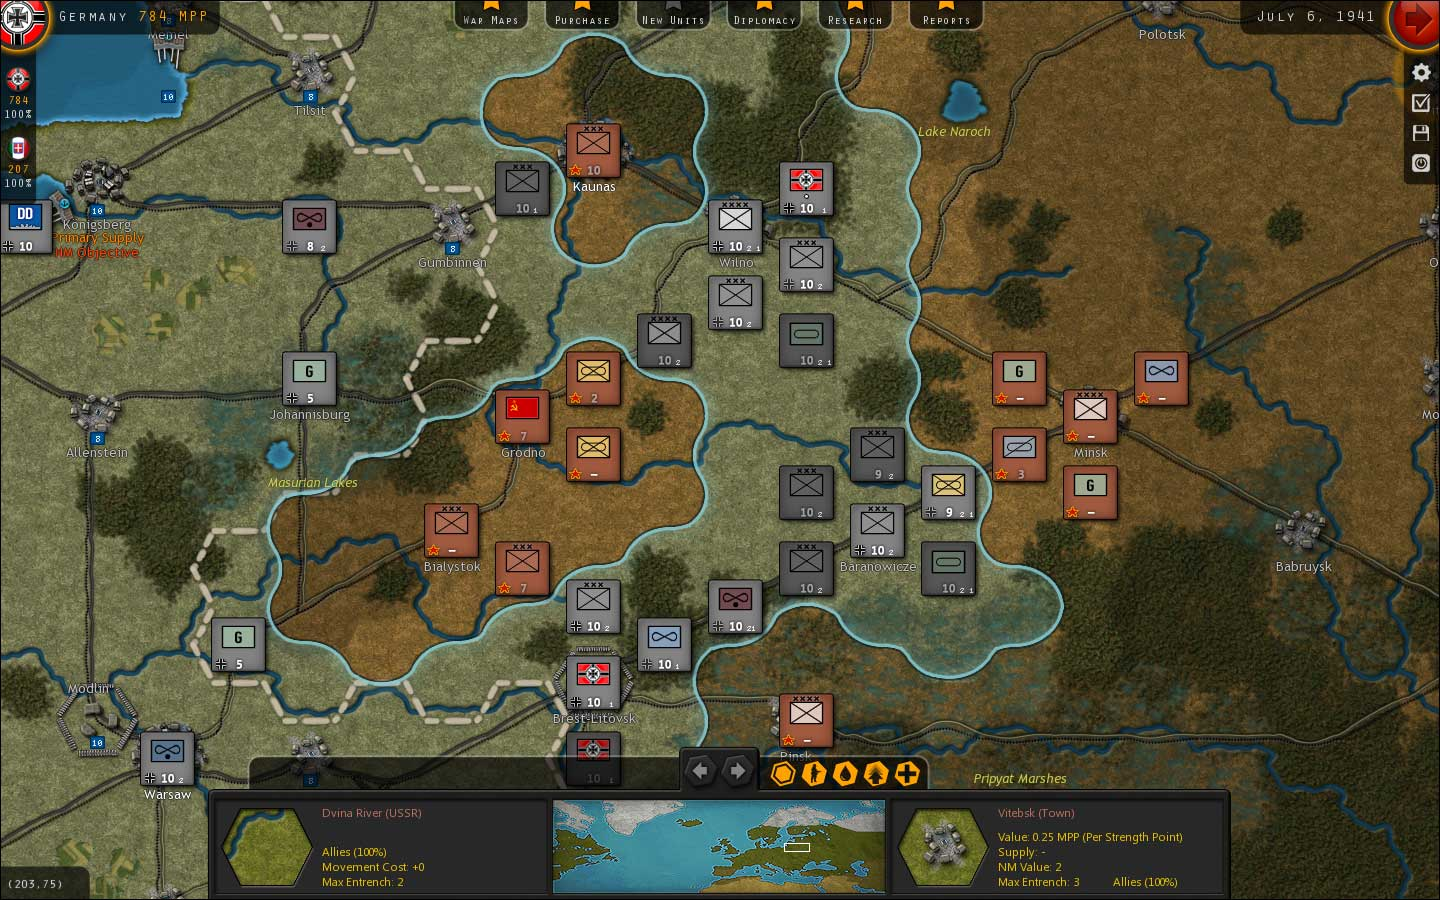 Real and simulated wars strategic command wwii war in europe review fury software has been around since 2002 pursuing perfection through many iterations of its strategic command signature game this review is for their gumiabroncs Gallery